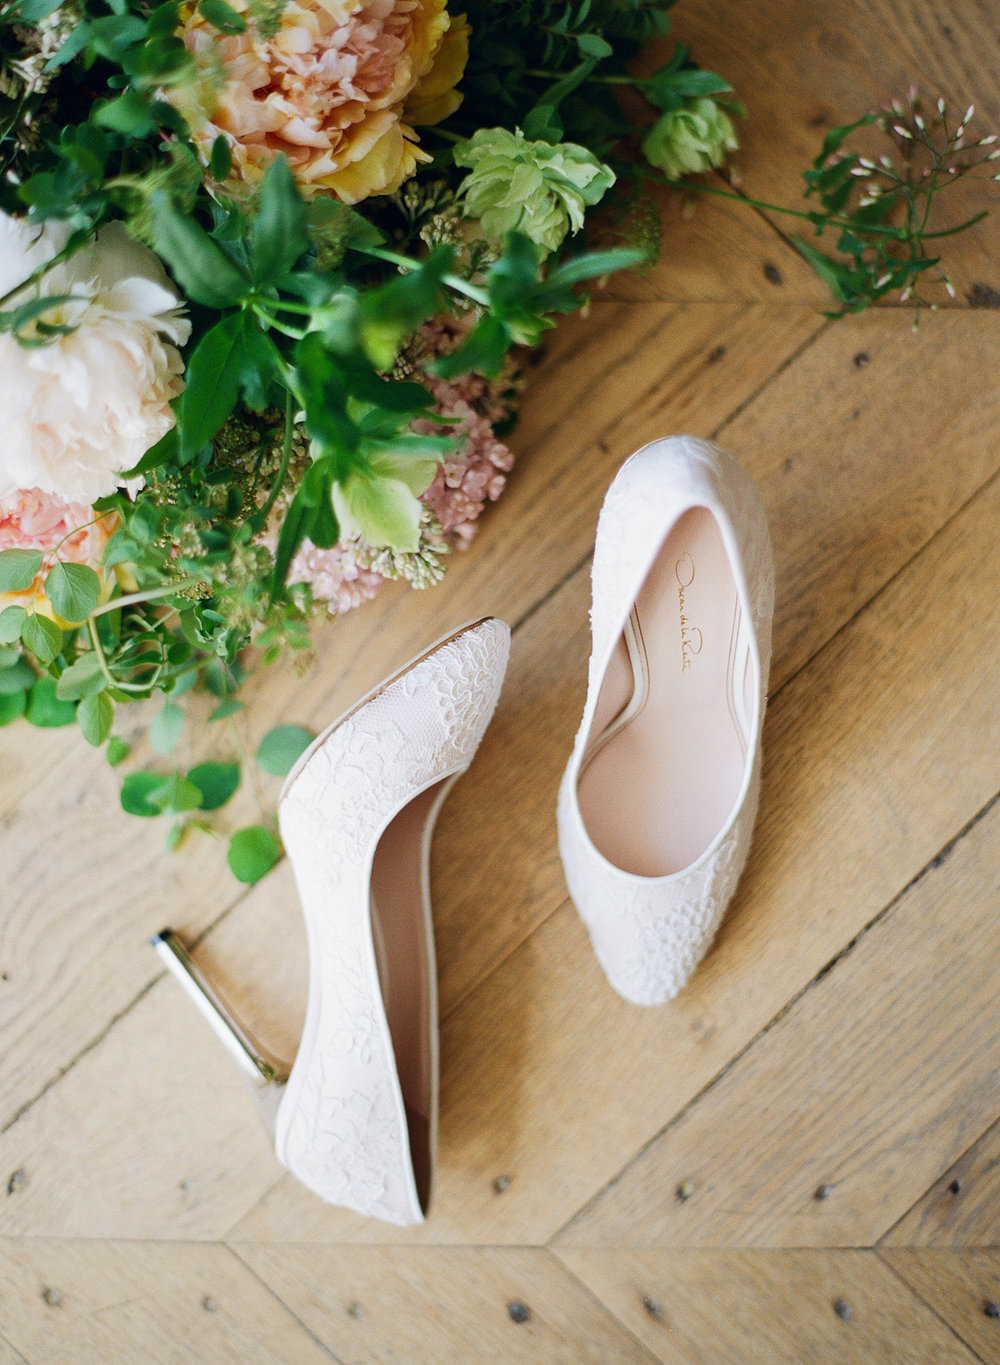 Oscar de la Renta lace pumps; Sylvie Gil Photography